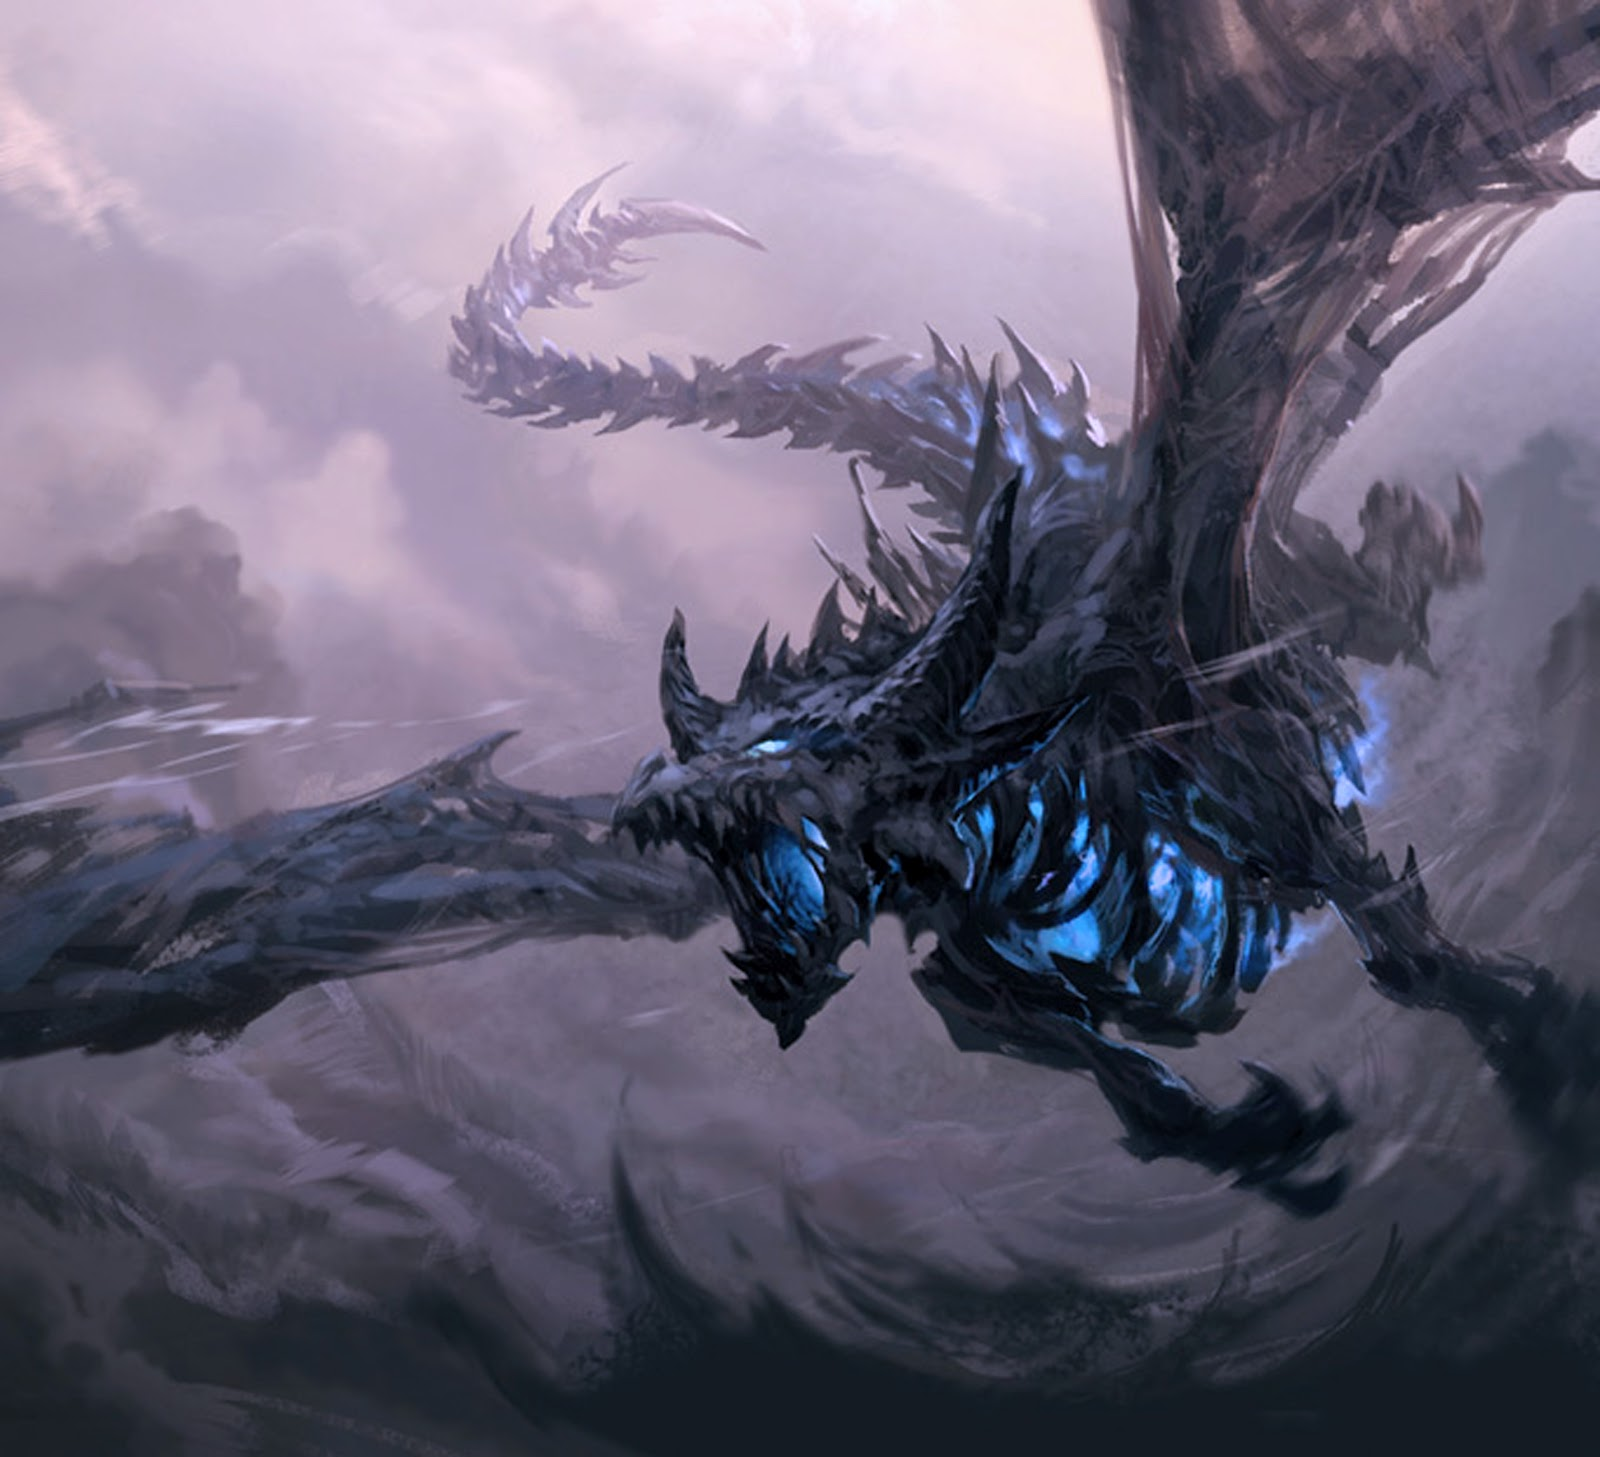 DSNGS SCI FI MEGAVERSE FANTASY DRAGONS CONCEPT ART GALLERY 1600x1457